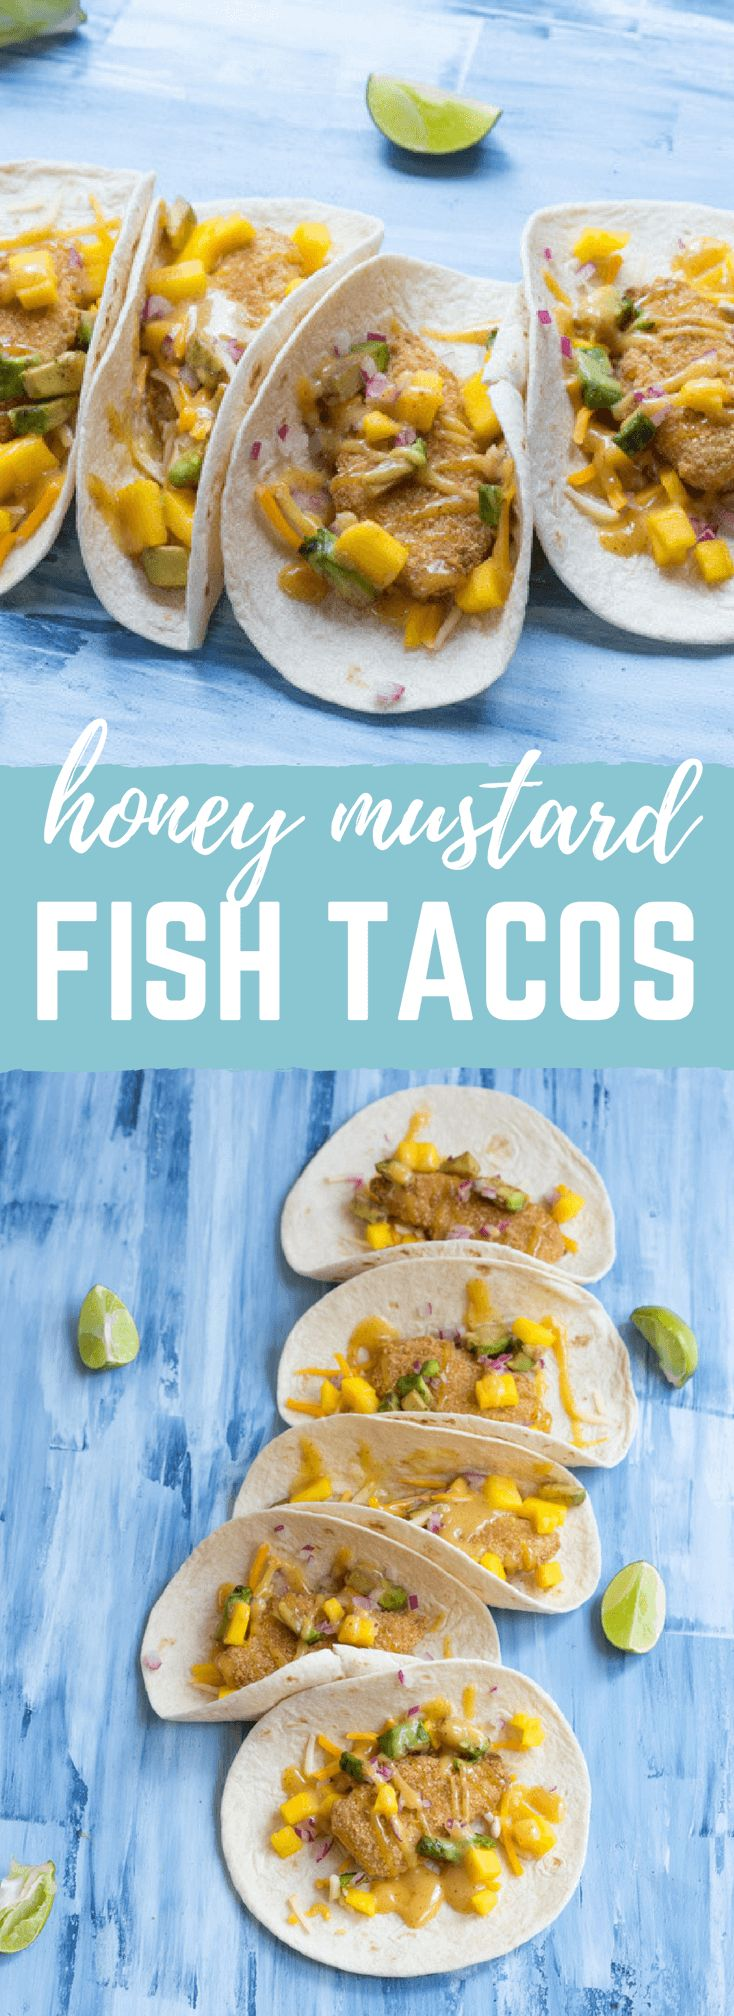 Honey Mustard Fish Tacos made with wild caught pollock tenders, onion, mango, avocado, and cheese nestled in a tortilla and drizzled with honey mustard! A tasty dinner on the table in less than 20 minutes. #ad #TrustGortons @GortonsSeafood